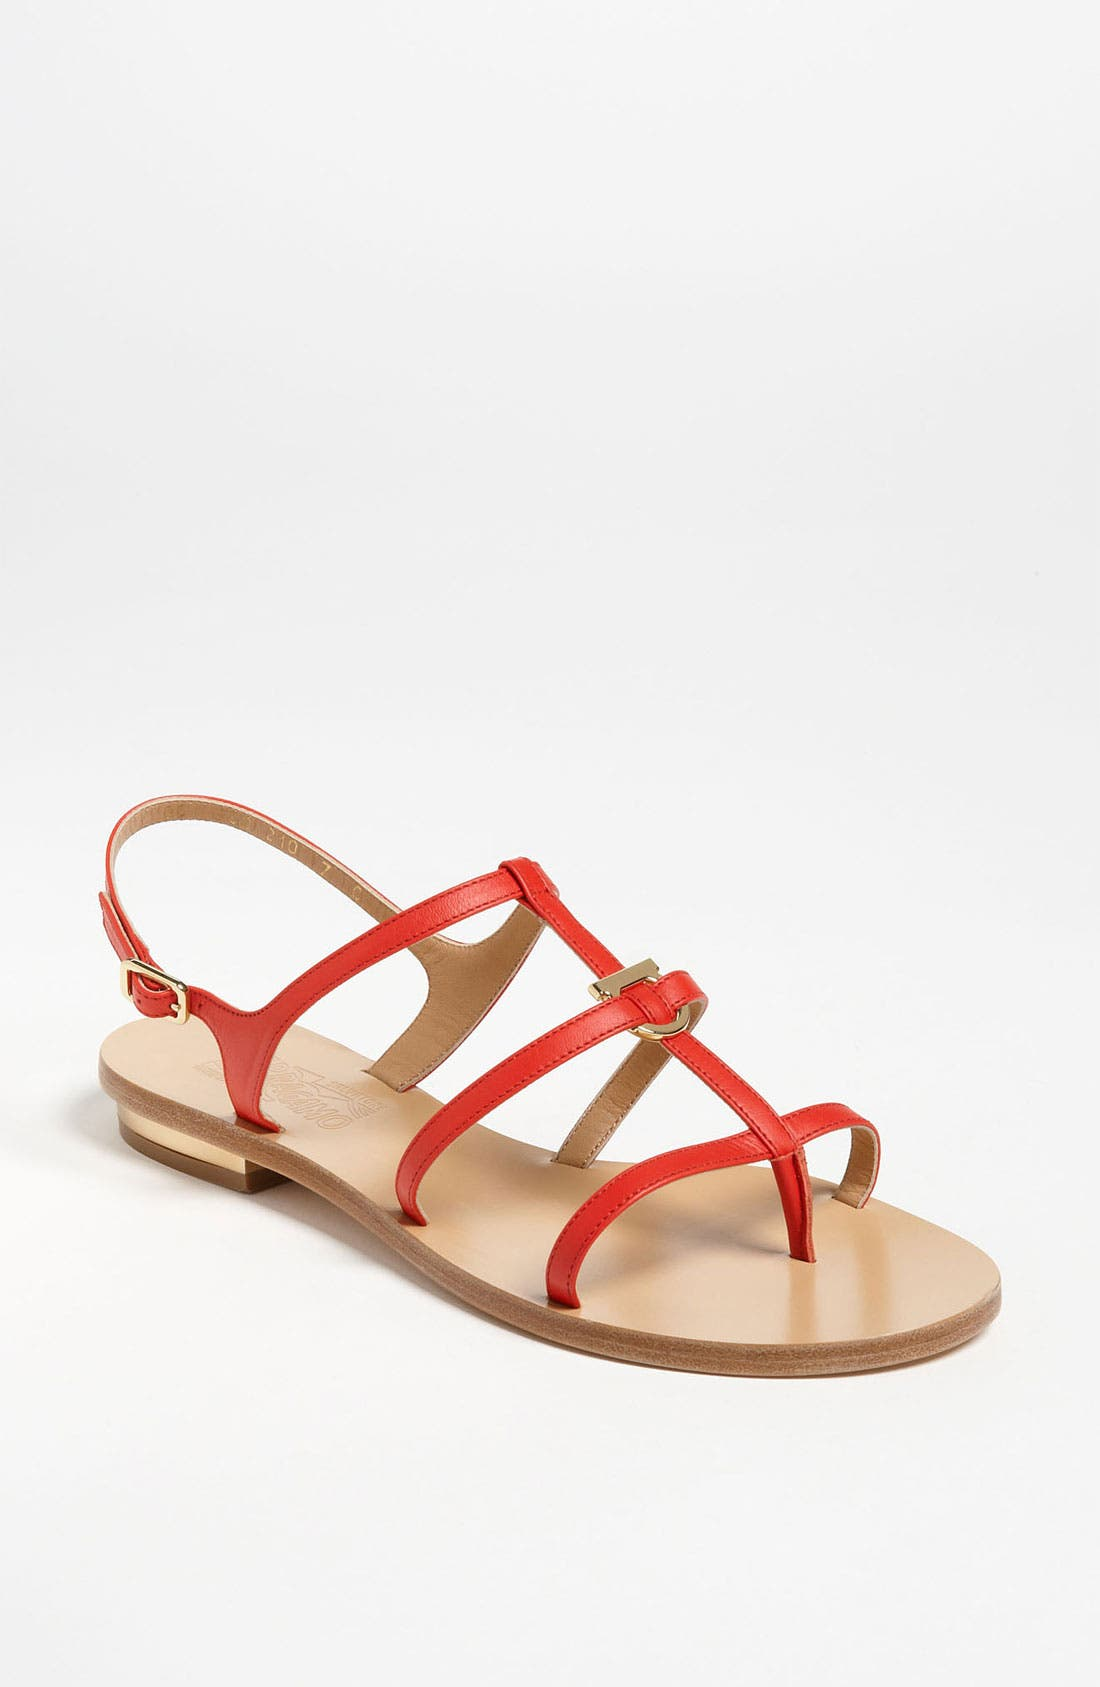 Alternate Image 1 Selected - Salvatore Ferragamo 'Senia' Sandal